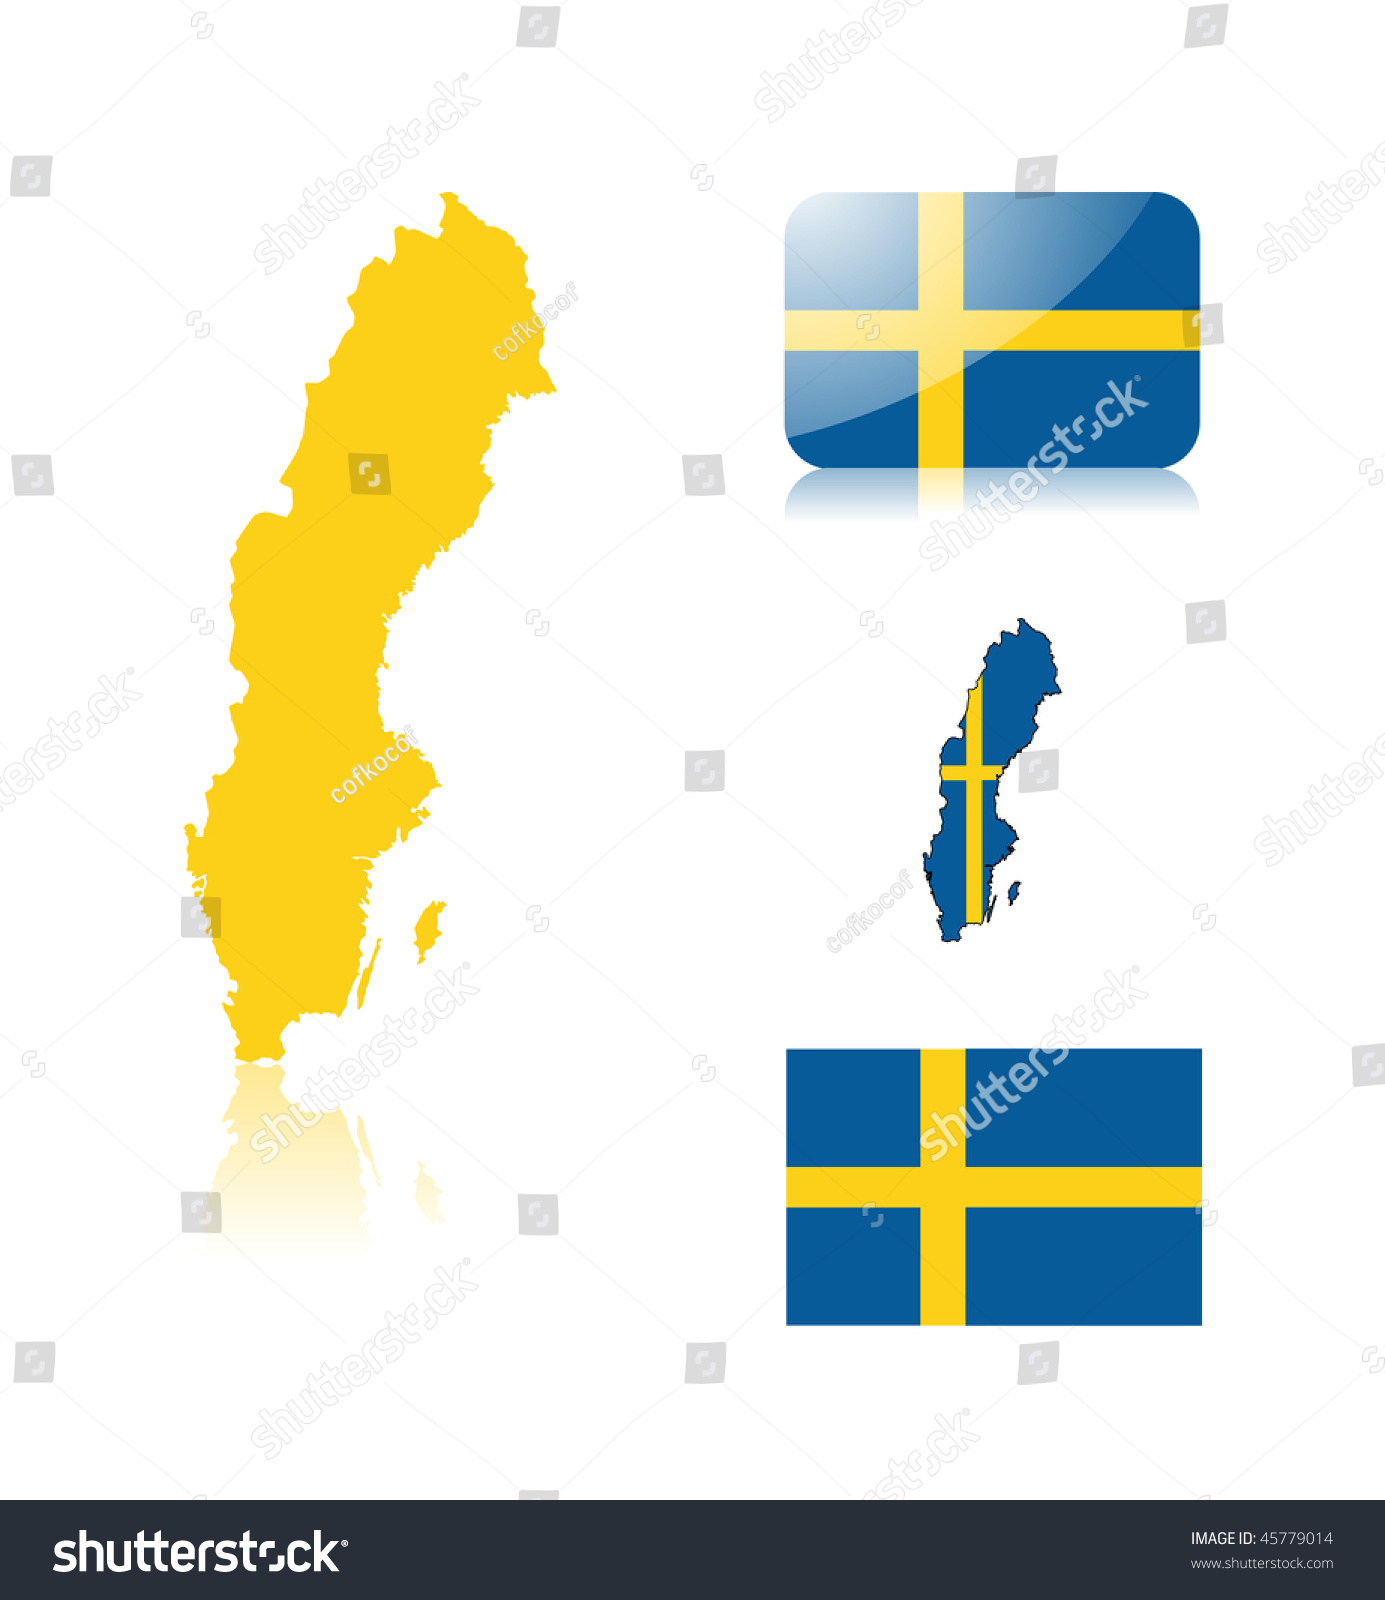 Clipart Sweden Map Flag What Is Map - Sweden map flag